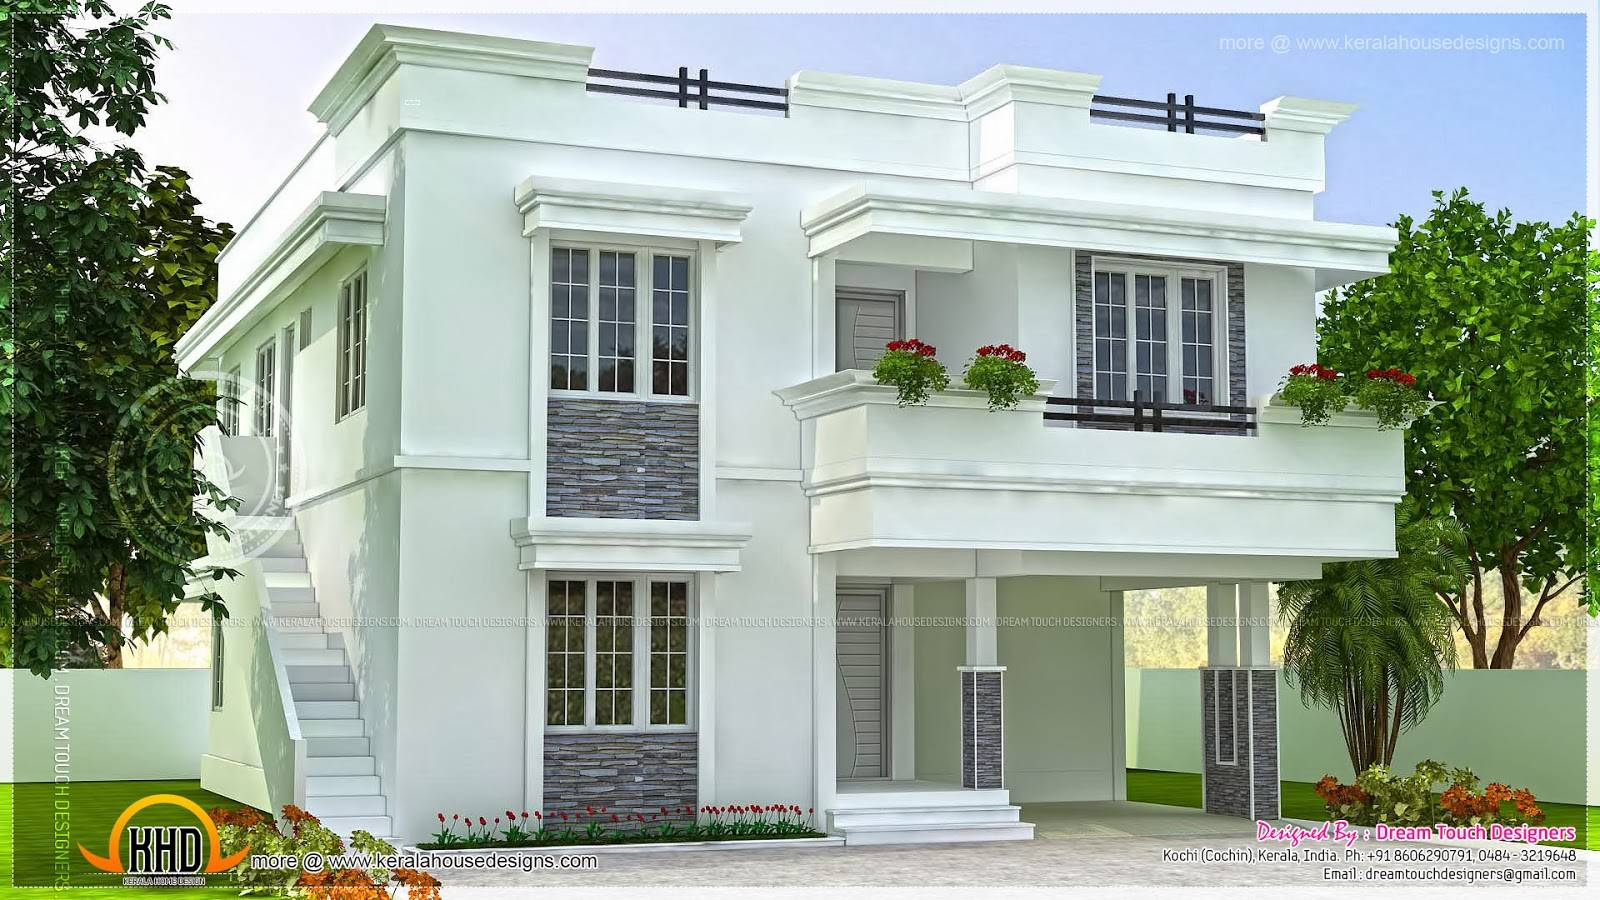 Modern Beautiful Home Design Indian House Plans Dma House Plans 178464